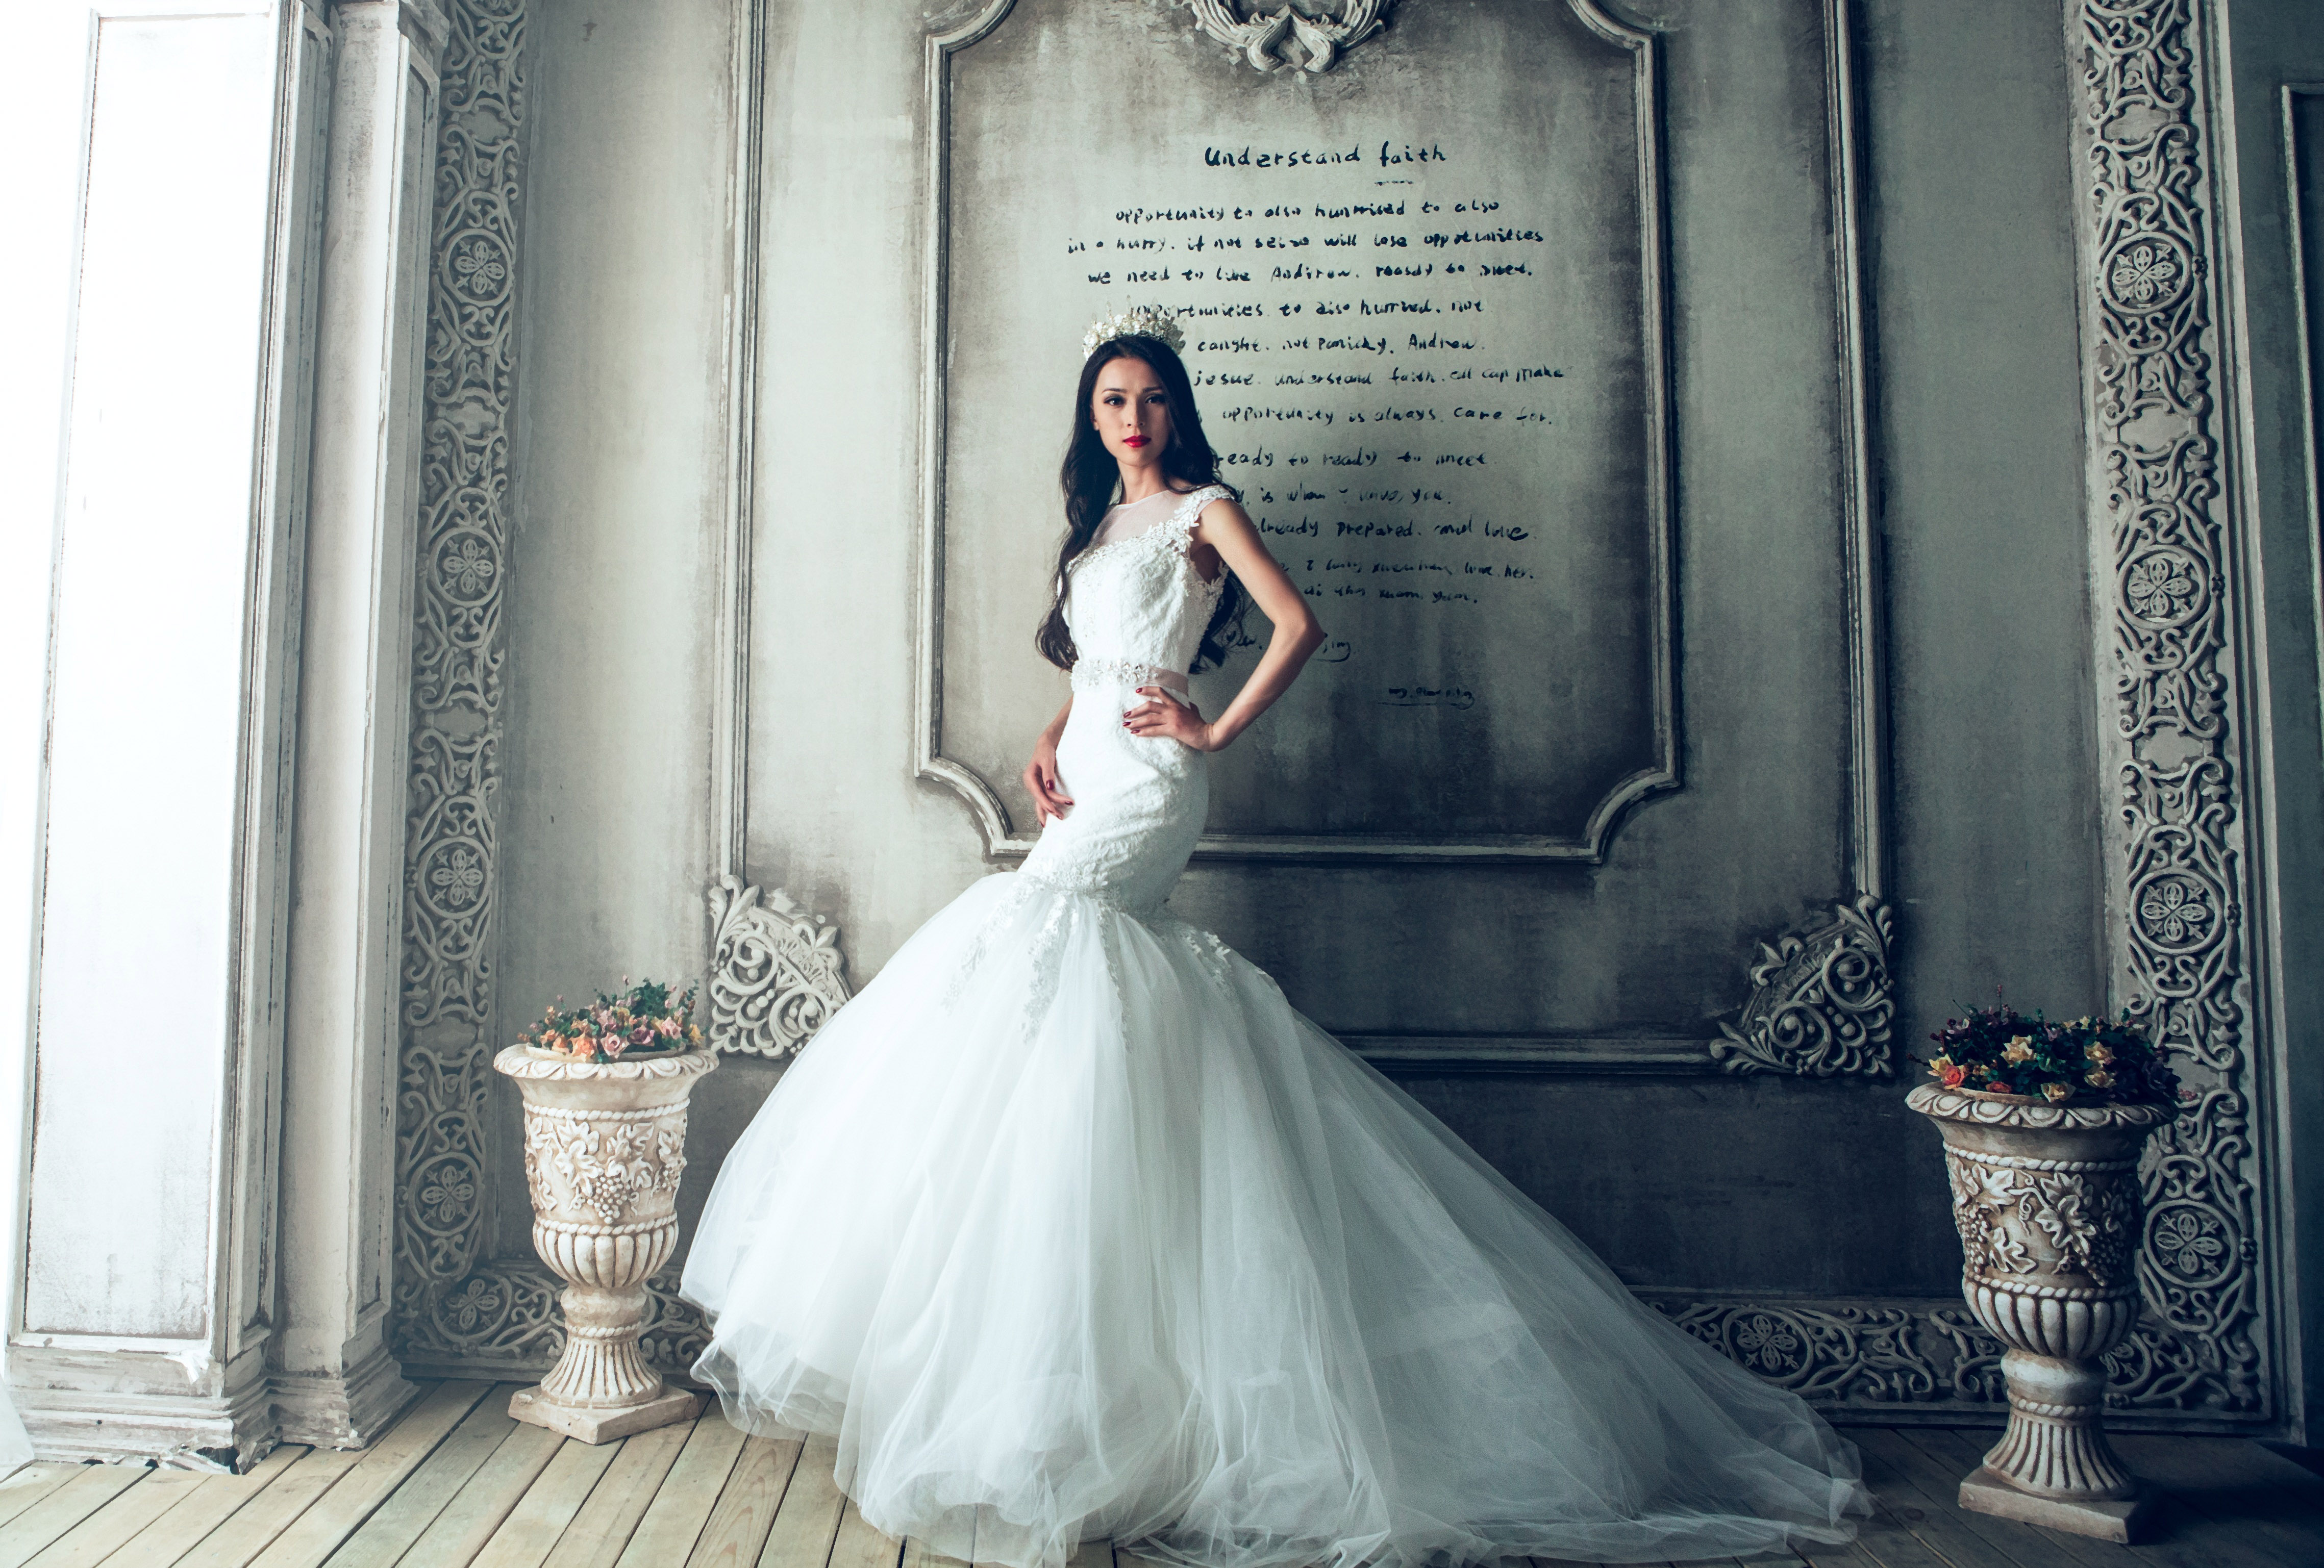 8a90d71ac beautiful-lady-in-a-white-wedding-dress image - Free stock photo ...